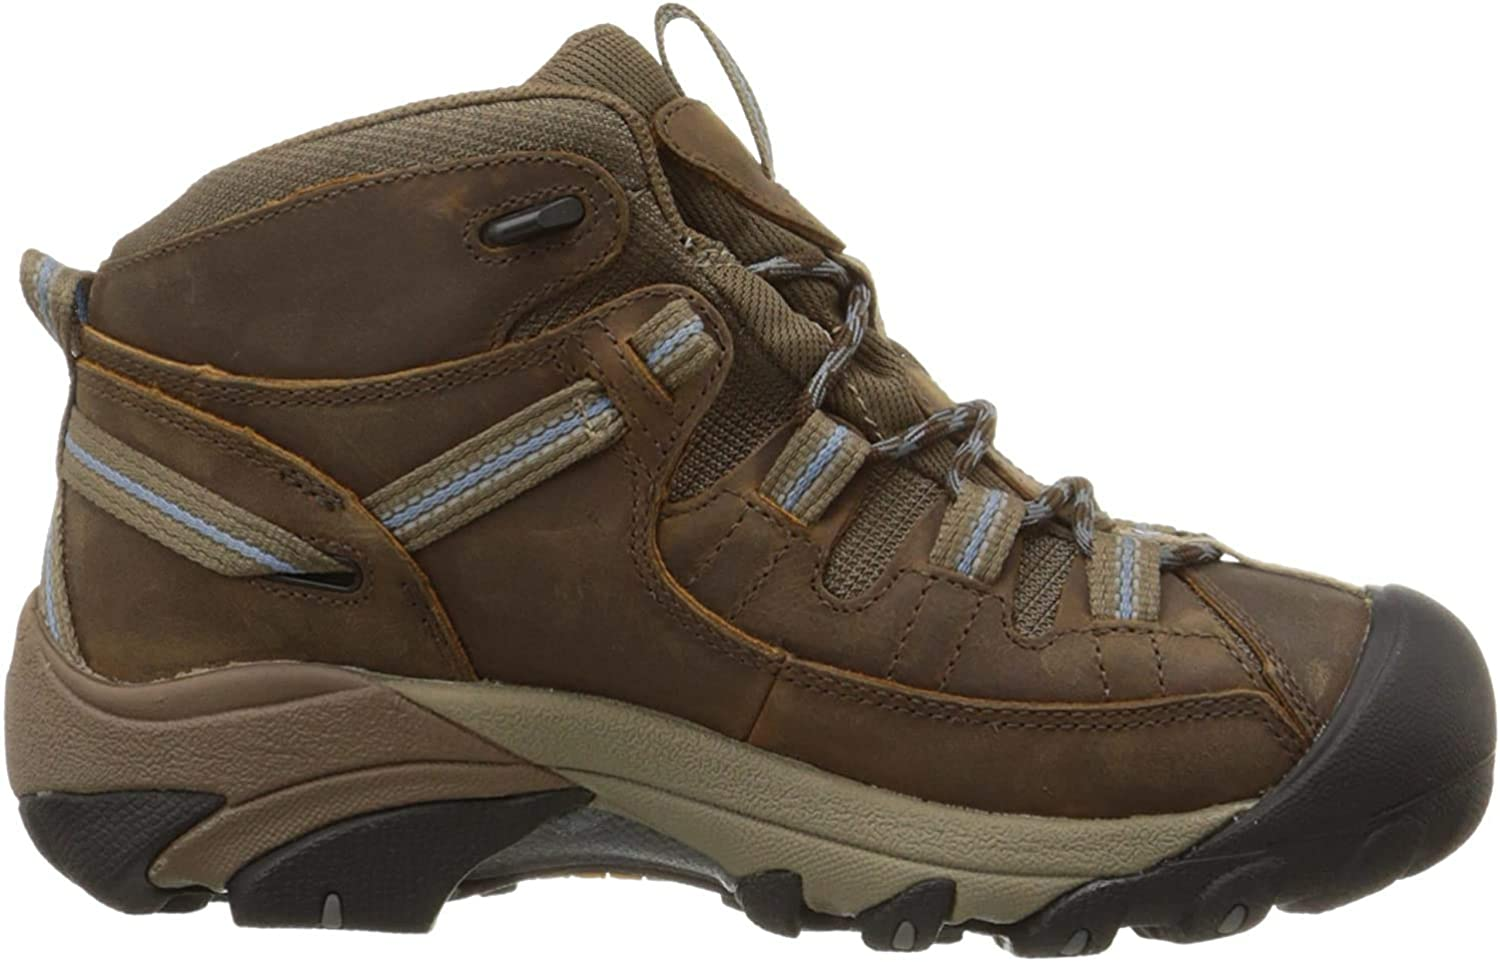 Donner Mountain Erik Mens Hiking Boots, Insulated Traction Ankle Waterproof Boots for Men